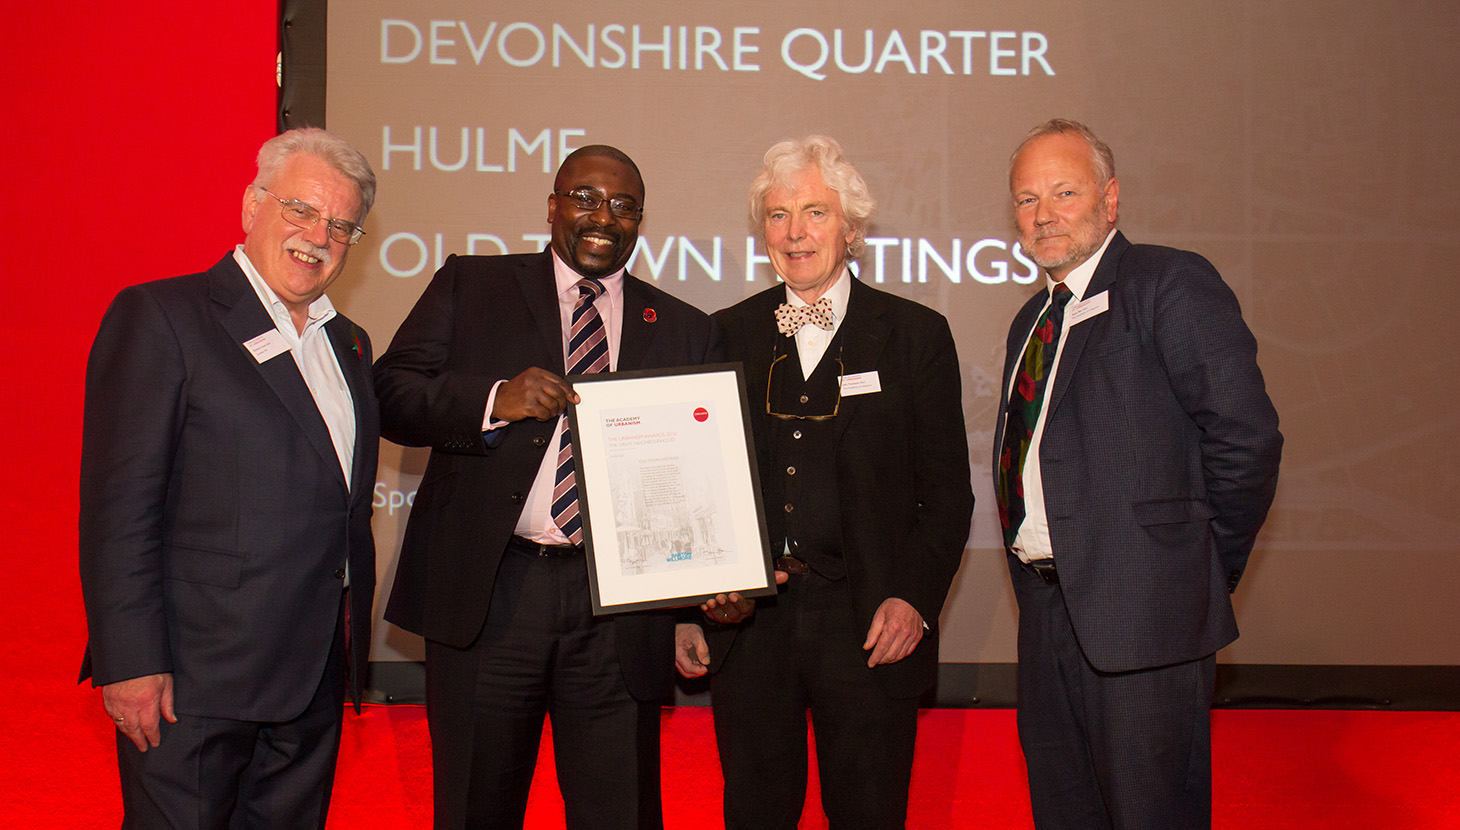 Symon Sentain AoU collects the Great Neighbourhood award on behalf of Hastings' Old Town